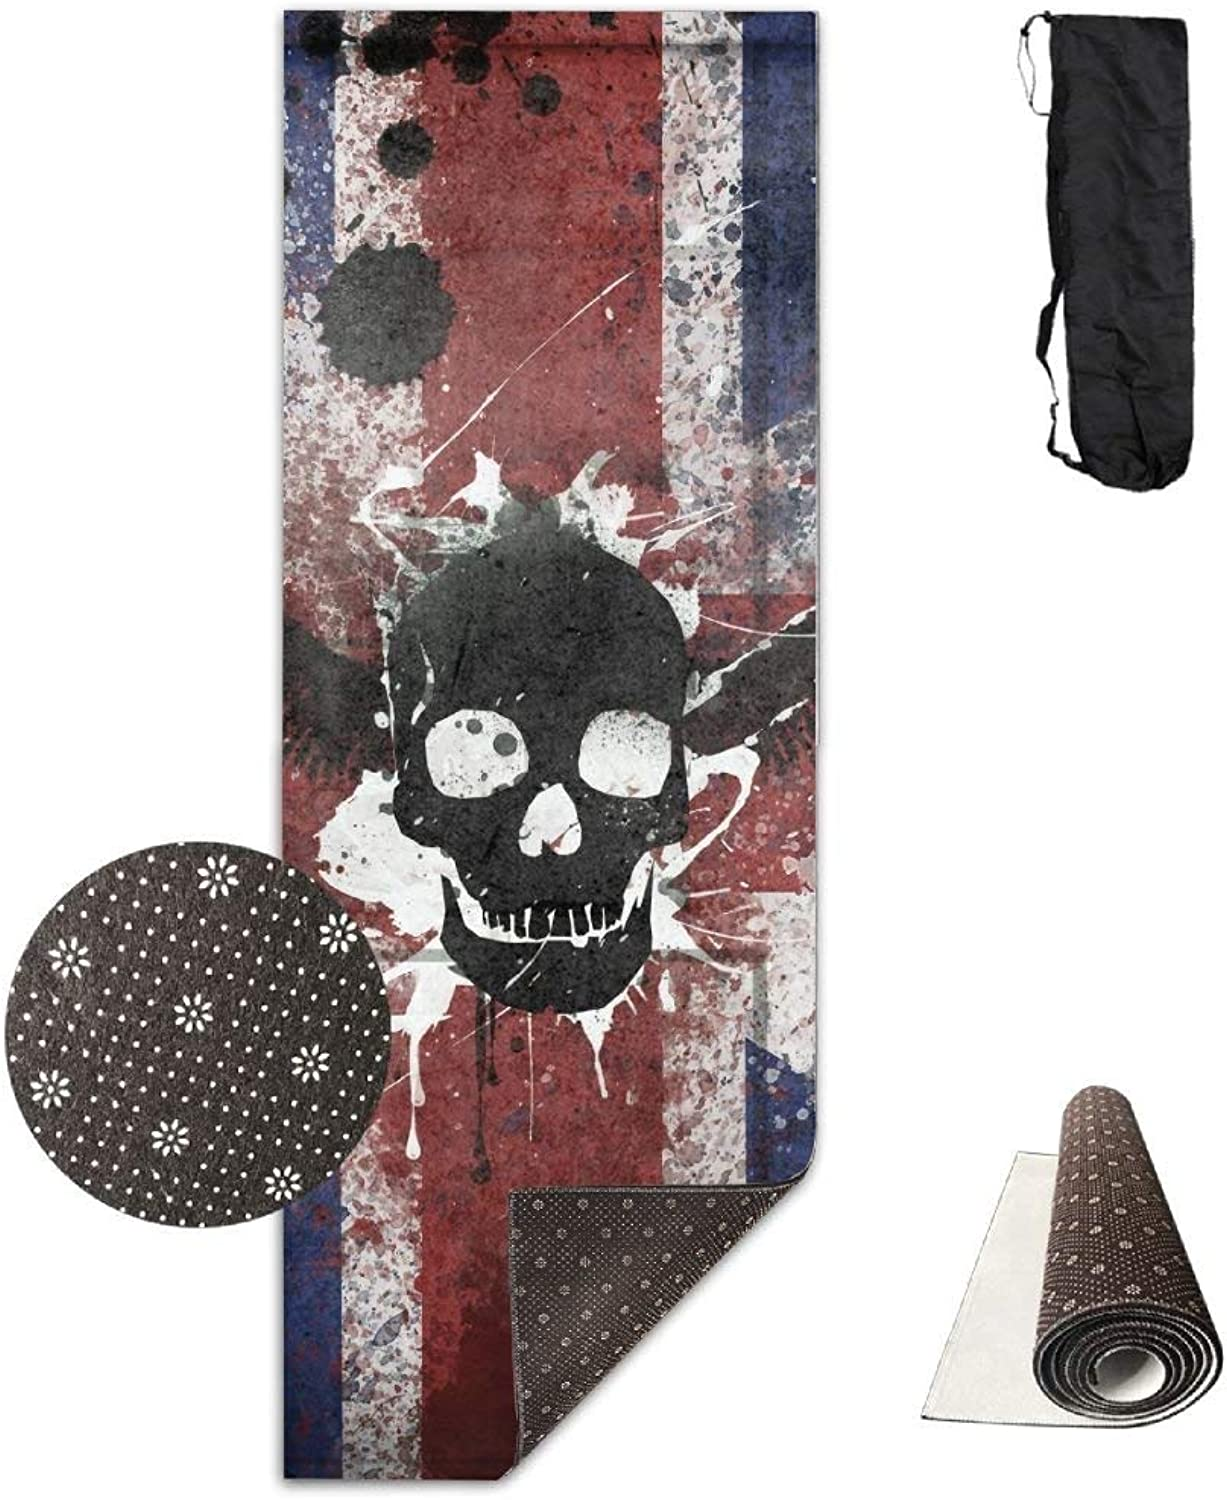 British United Kingdom Pirate Skull Flag Yoga Mat  Advanced Yoga Mat  NonSlip Lining  Easy to Clean  LatexFree  Lightweight and Durable  Long 180 Width 61cm